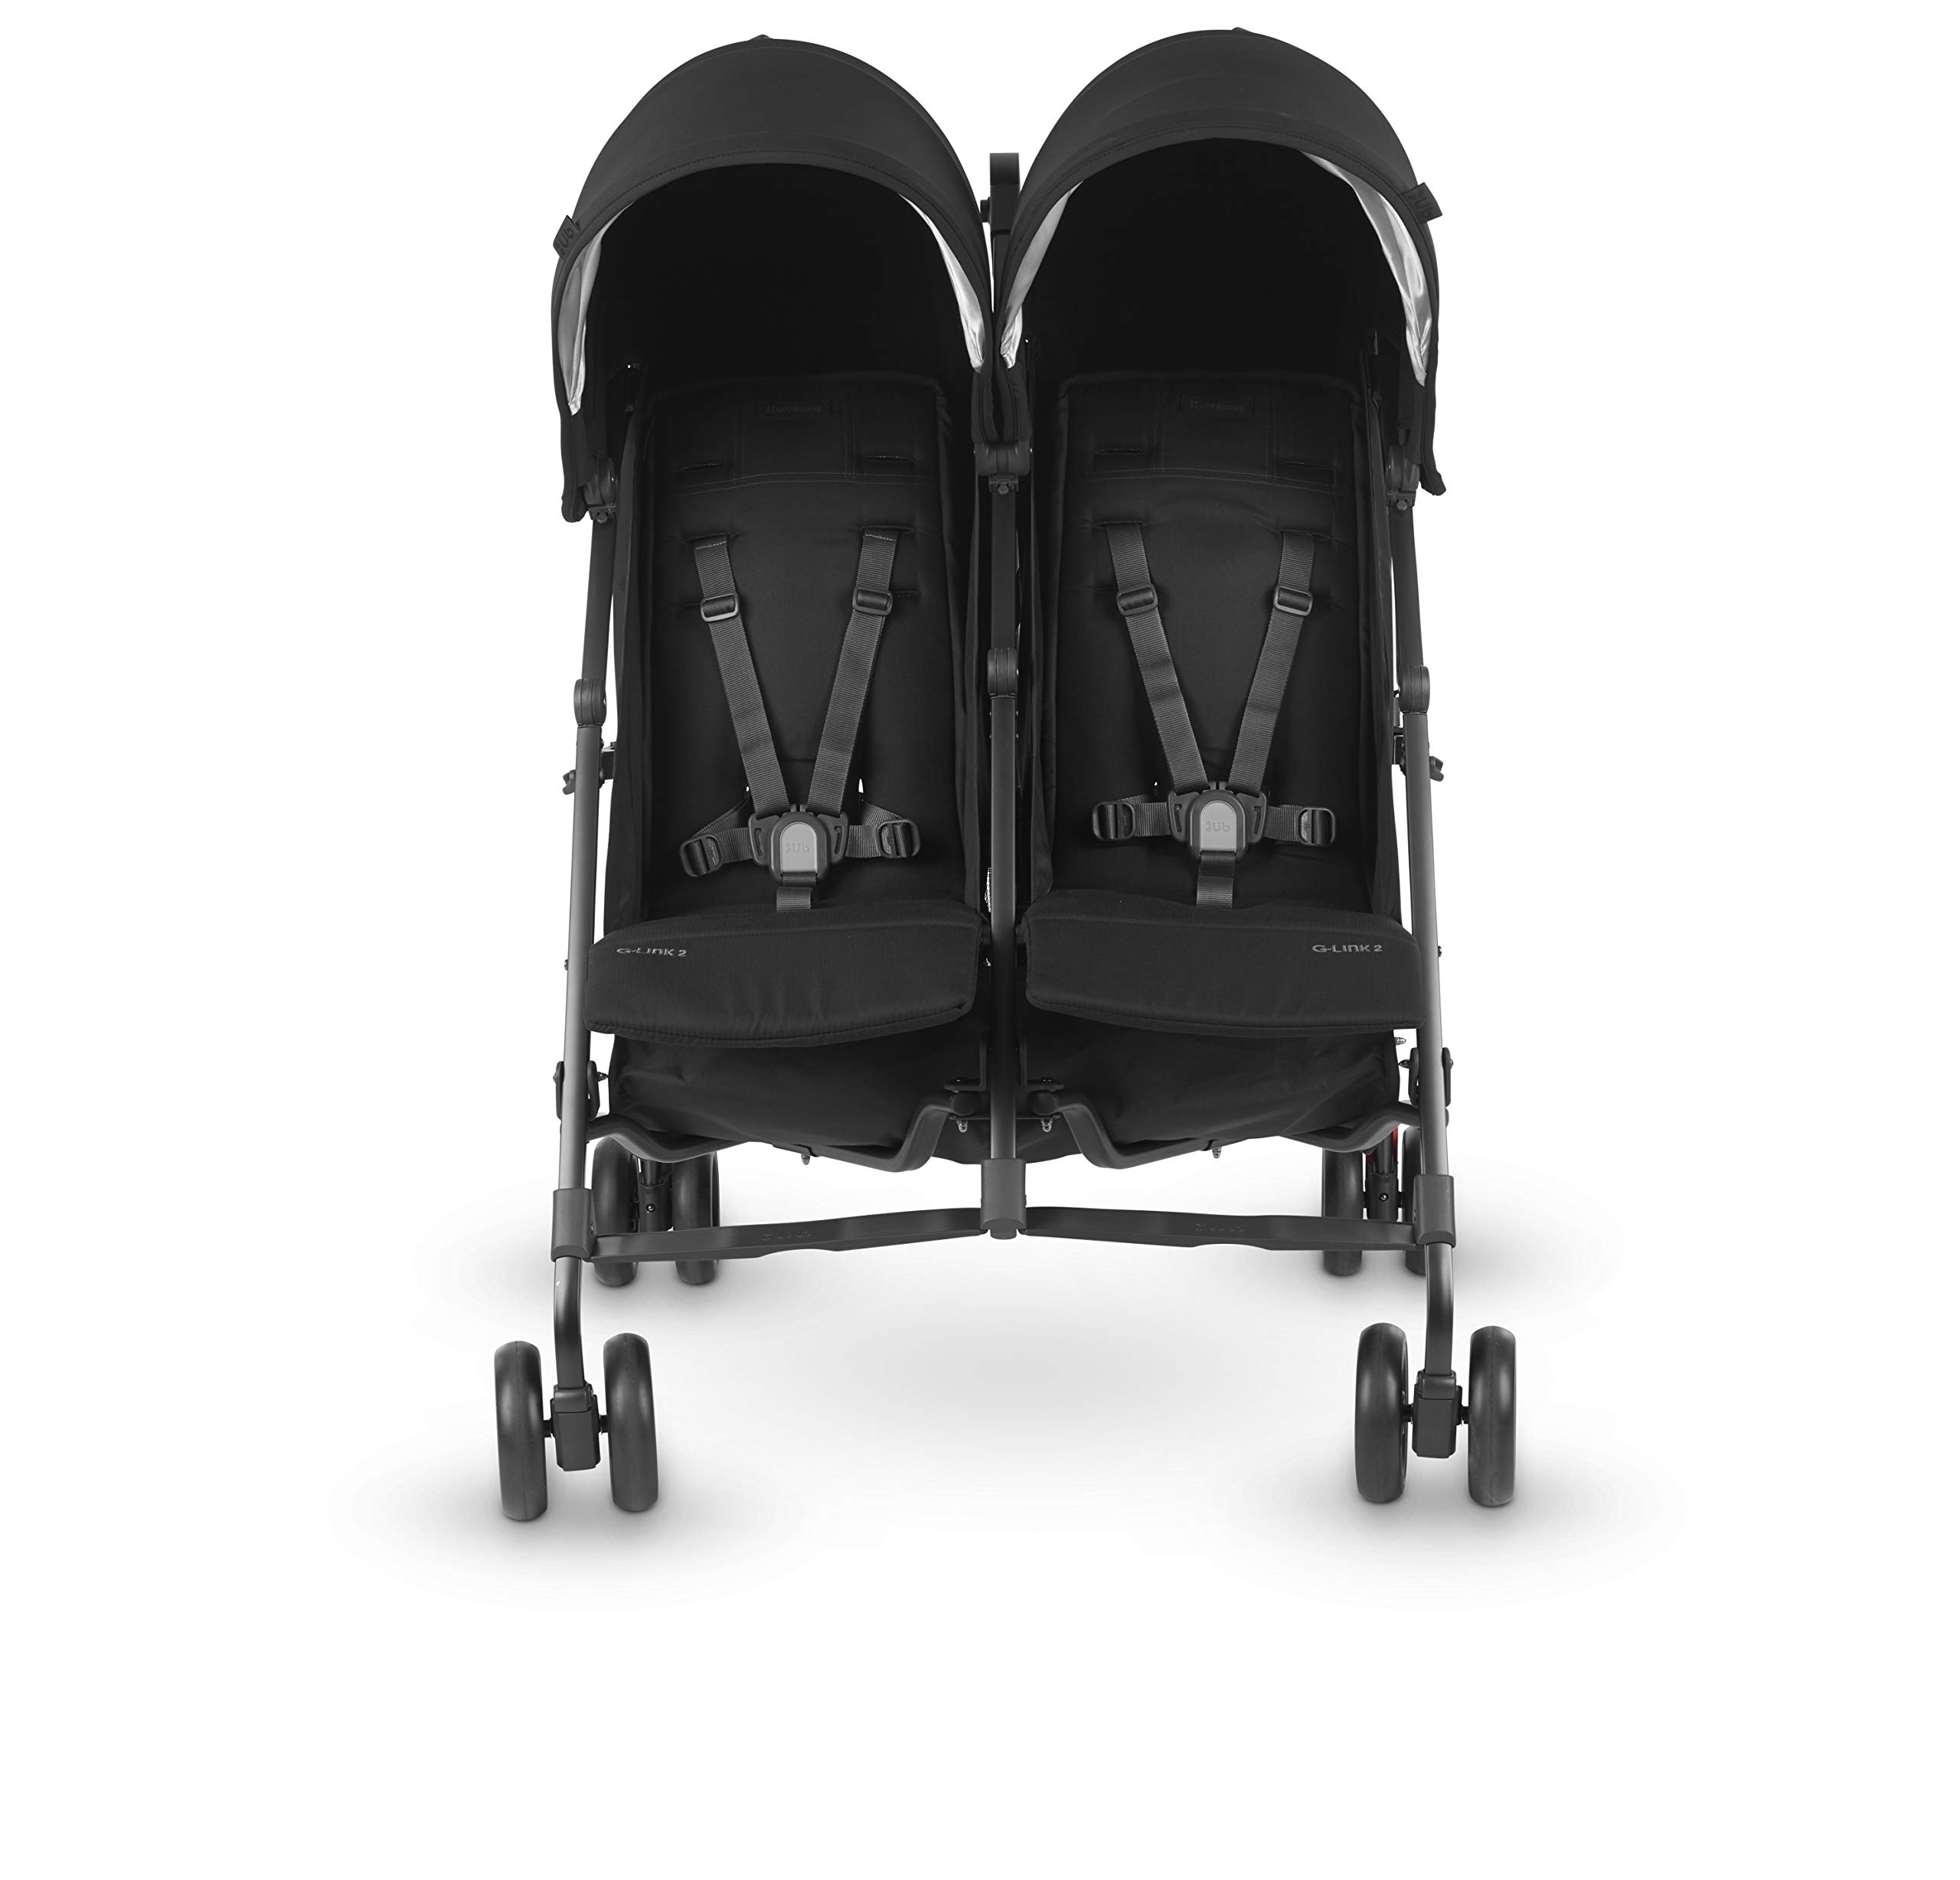 UPPAbaby G-Link 2 Stroller-Jake (Black/Carbon) by UPPAbaby